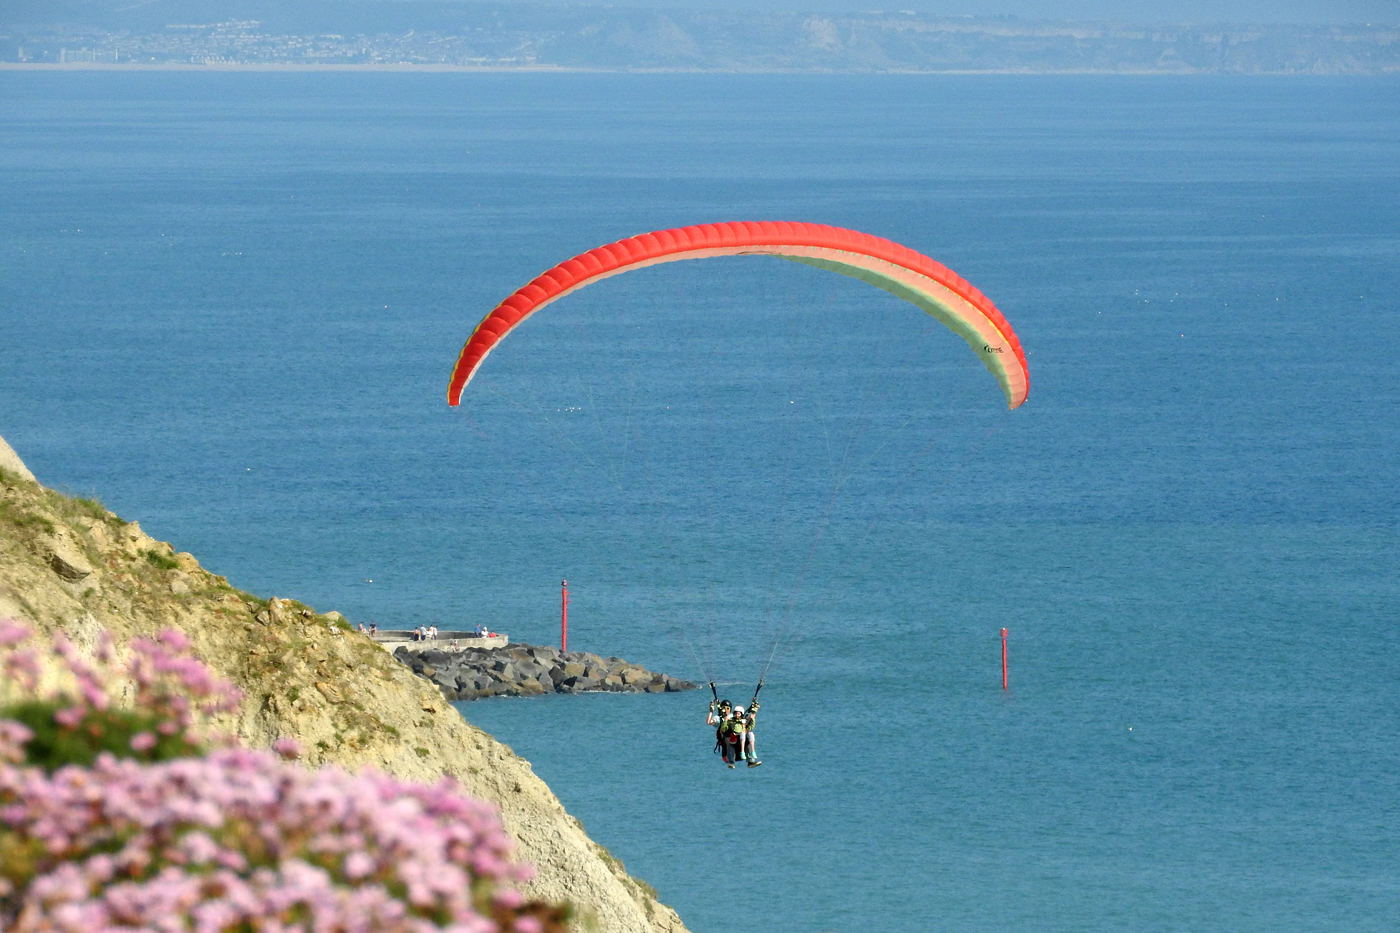 A Great Weekend Tandem Paragliding on the Jurassic Coast